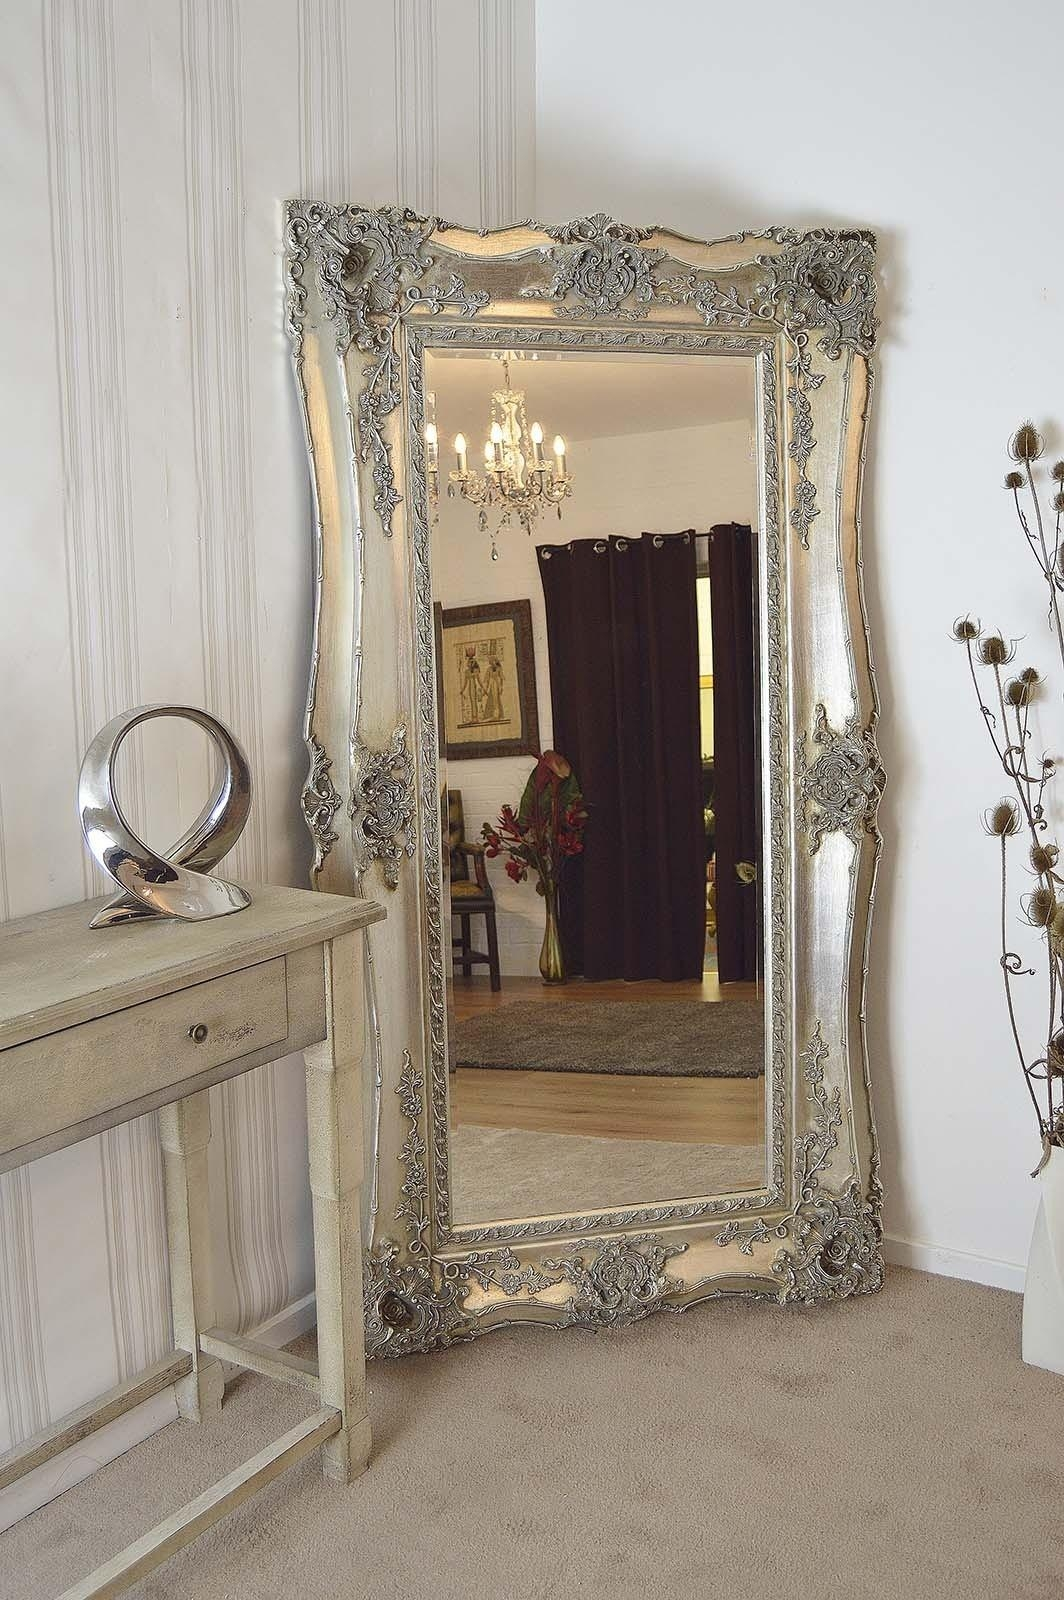 Large Antique Wall Mirror Ornate Frame Antique Ornate Wall Mirrors Regarding Antique Full Length Wall Mirror (Image 16 of 20)